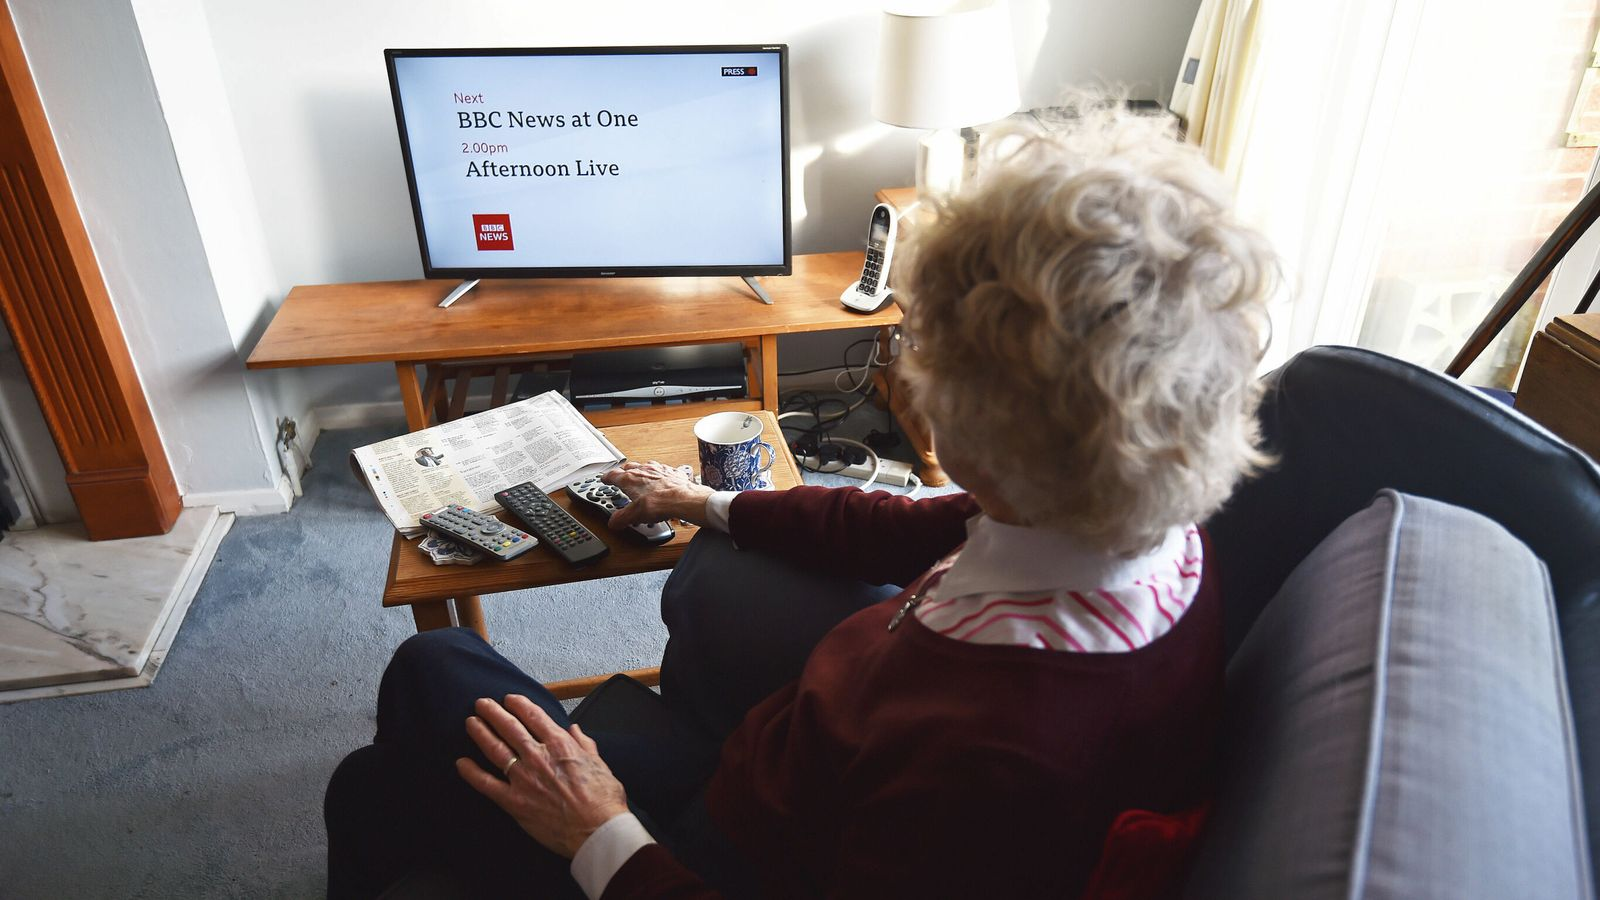 Universal free TV licence comes to an end for over-75s